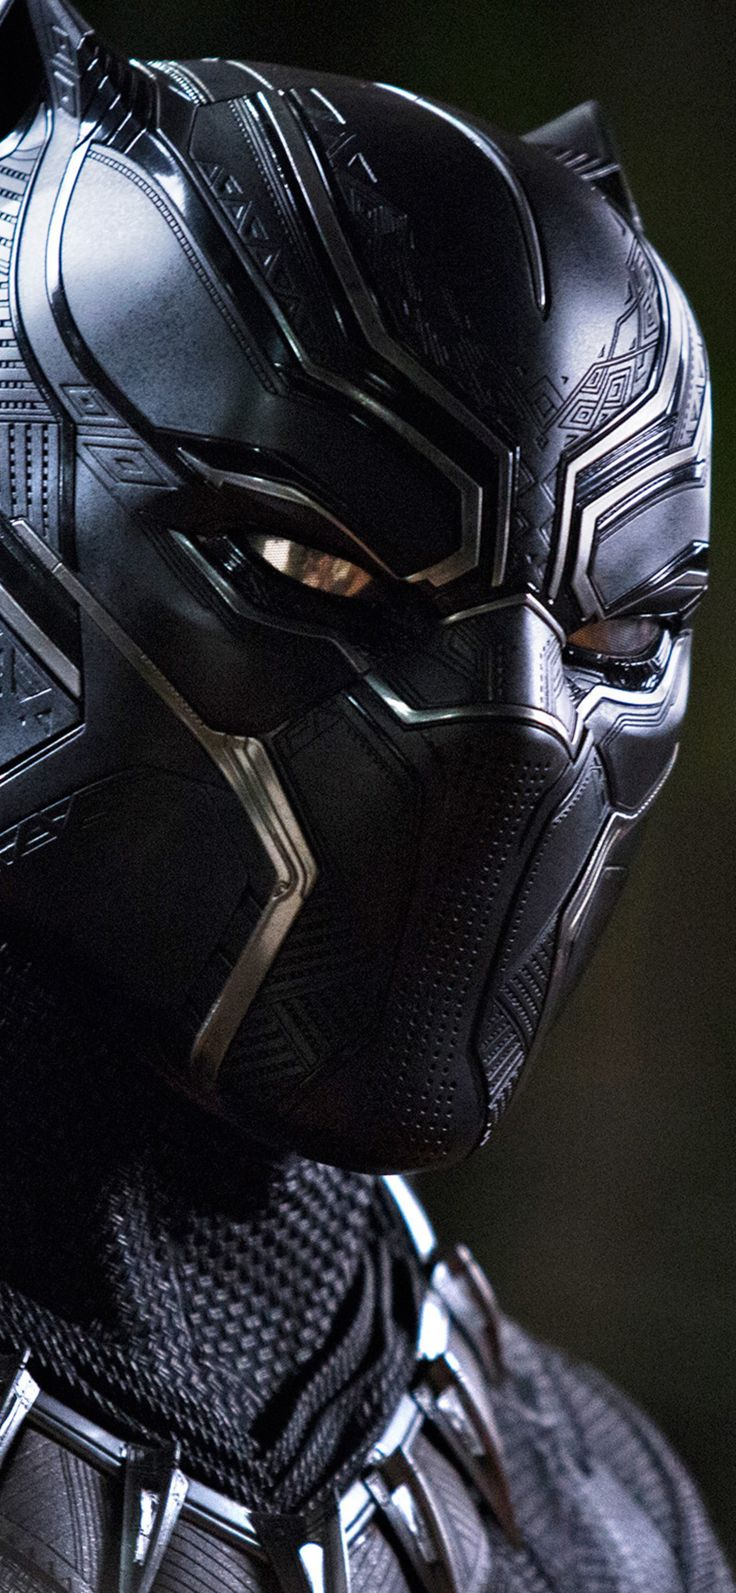 1125x2436 Black Panther Movie Iphone XS,Iphone 10,Iphone X